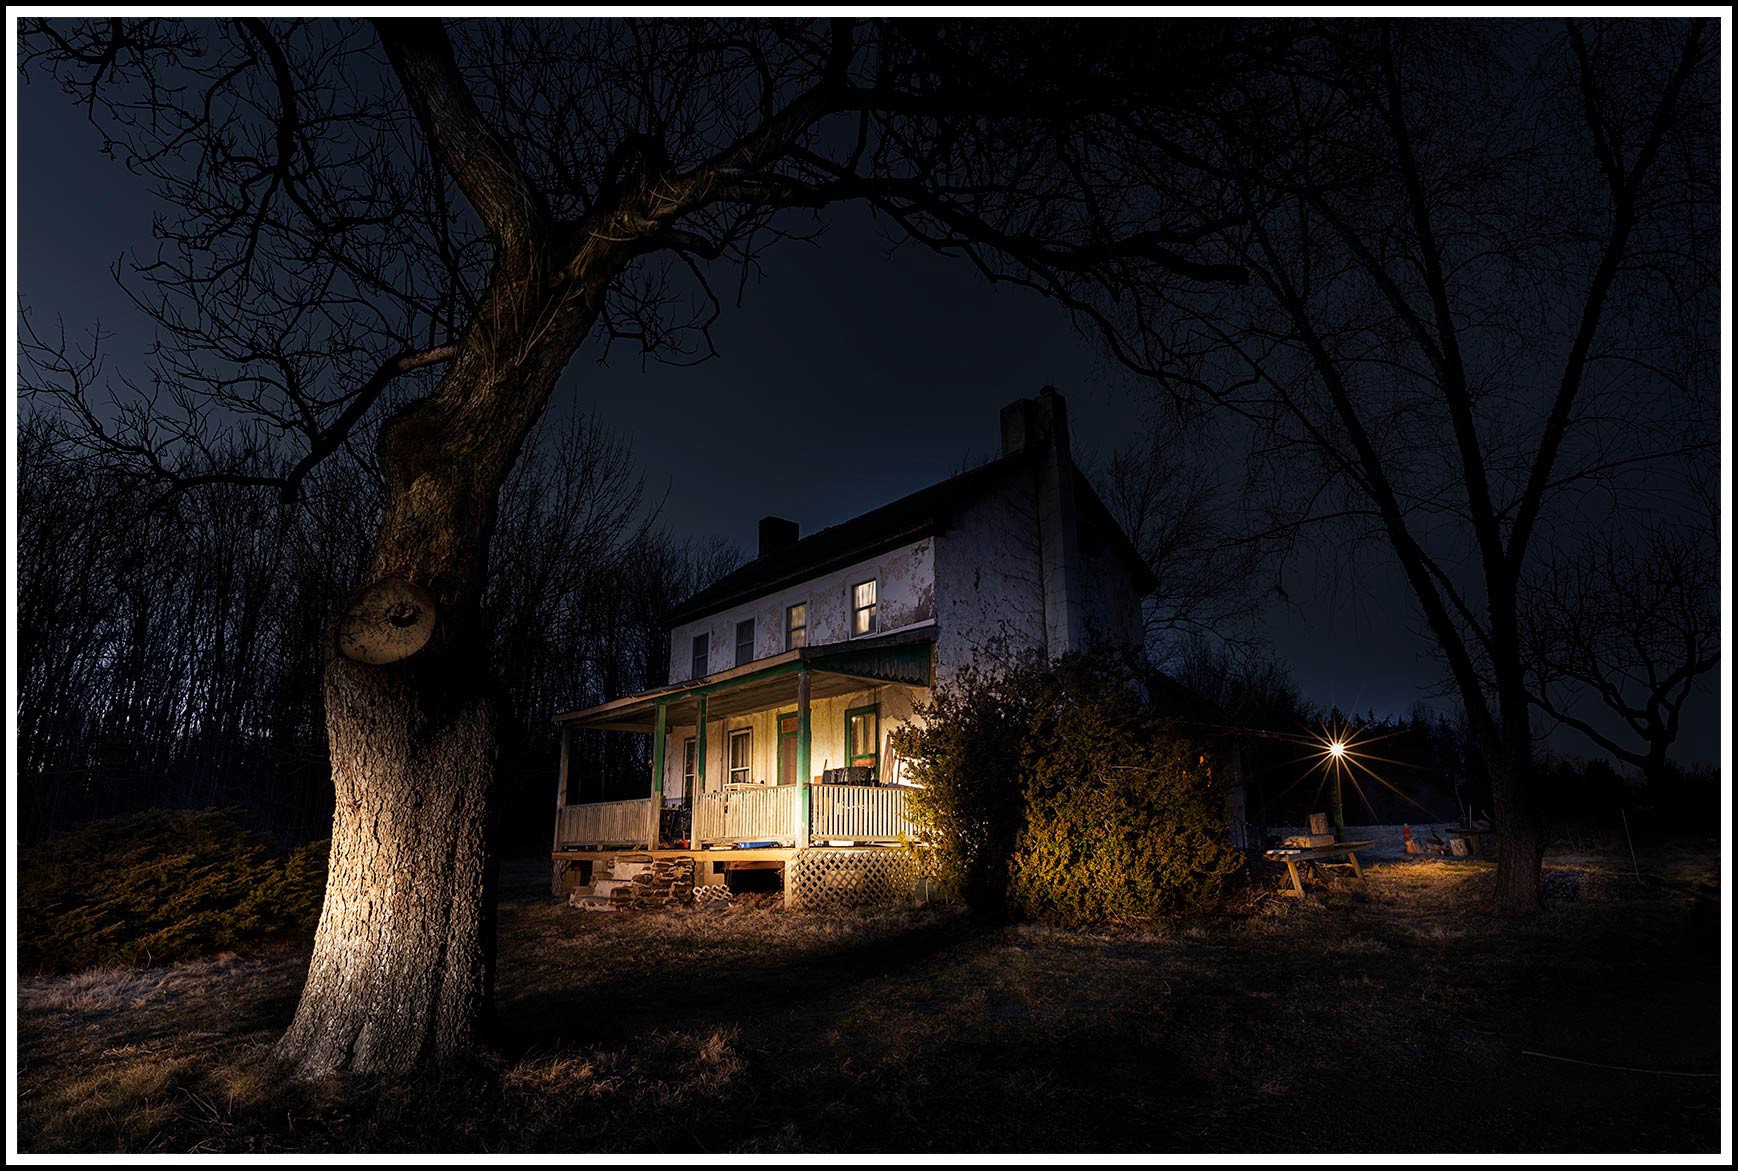 A farmhouse caught in the headlights of a car